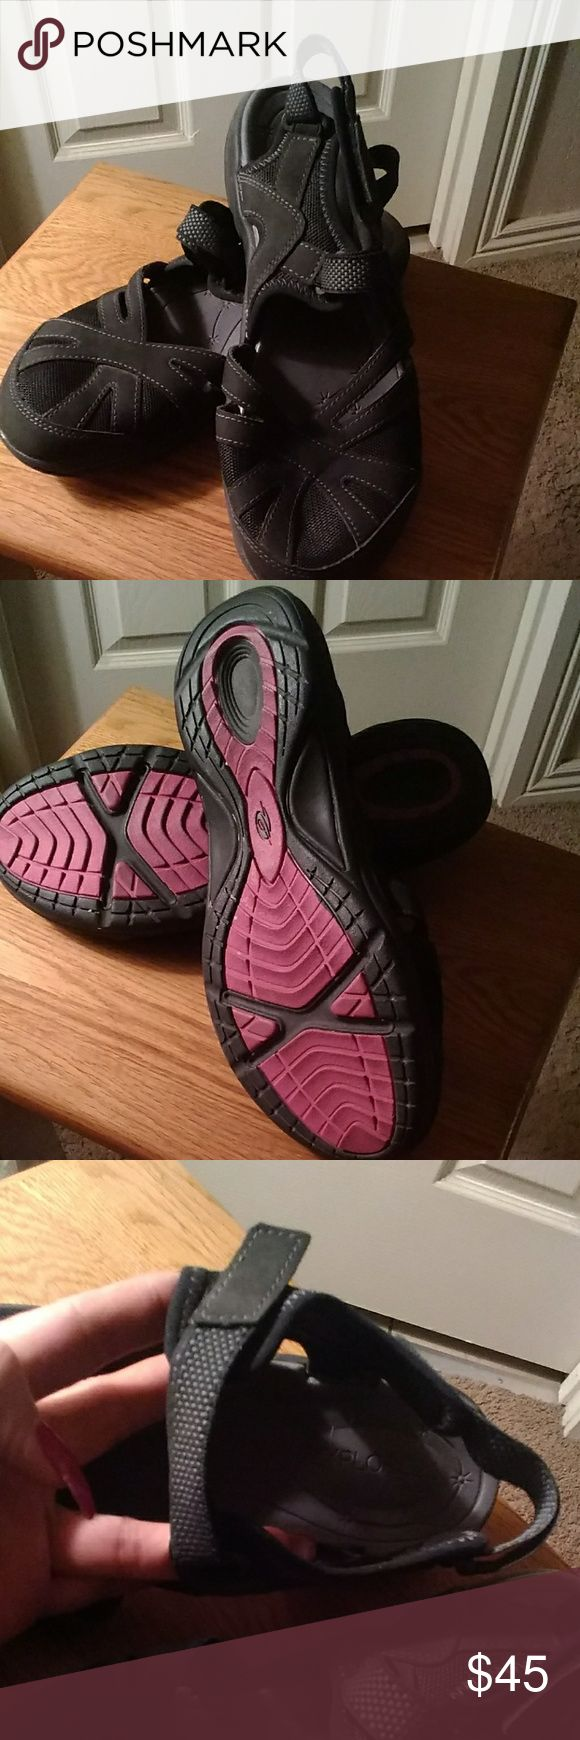 LAST PRICE DROP Easy spirit flats EUC....wore one time so cute has double straps with velcro closure the toe is mesh very comfortable just not a flat kind of girl Easy Spirit Shoes Flats & Loafers